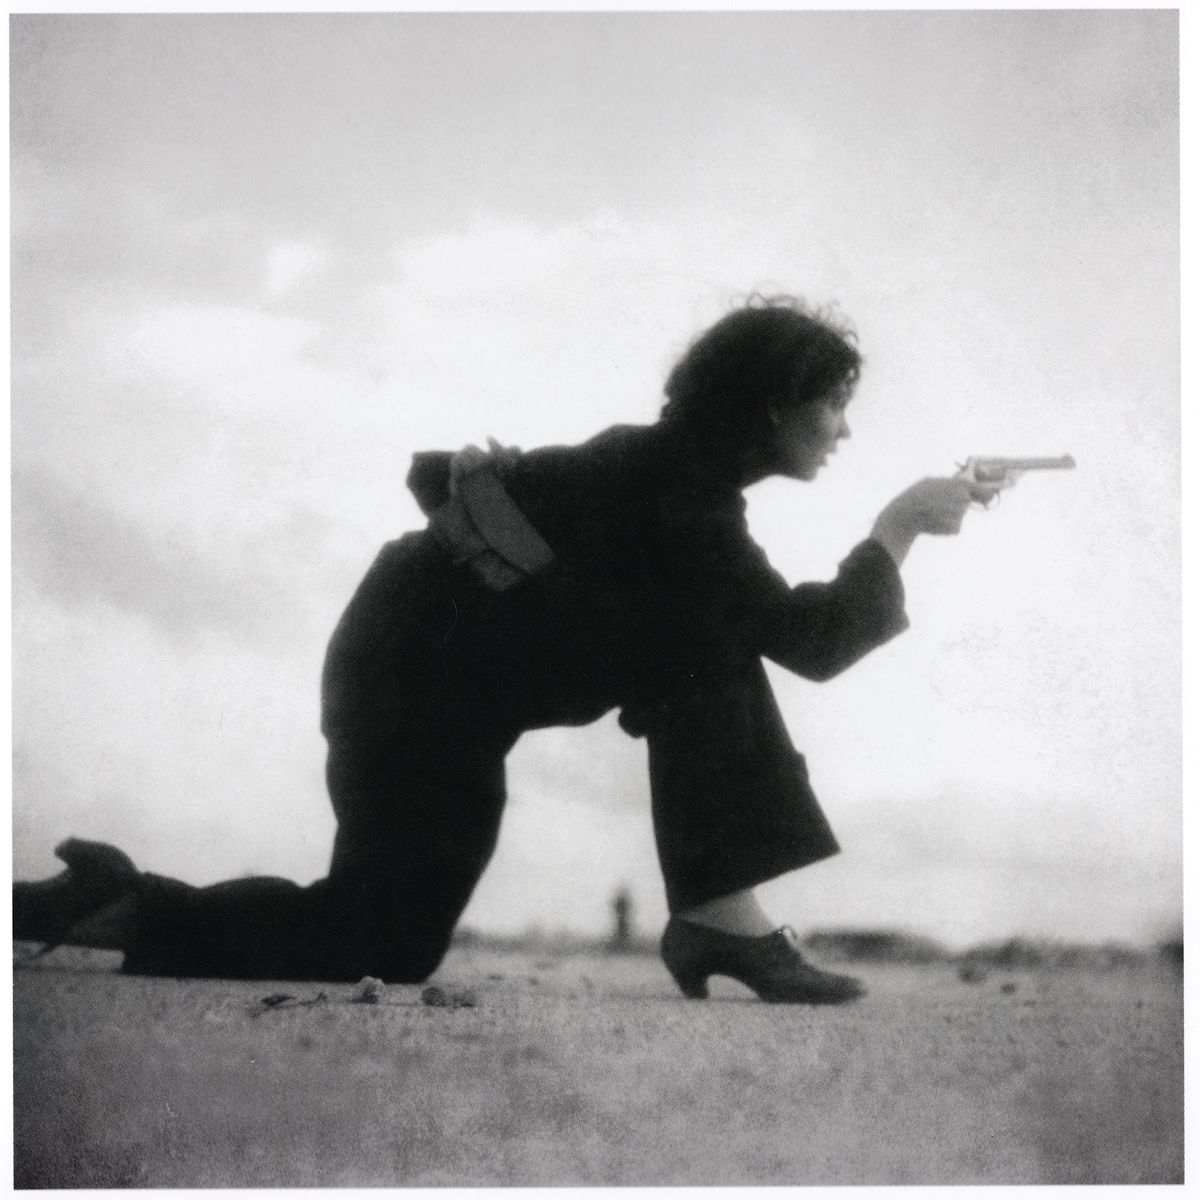 Republican Militia woman training on the beach outside Barcelona by Gerda Taro - August 1936